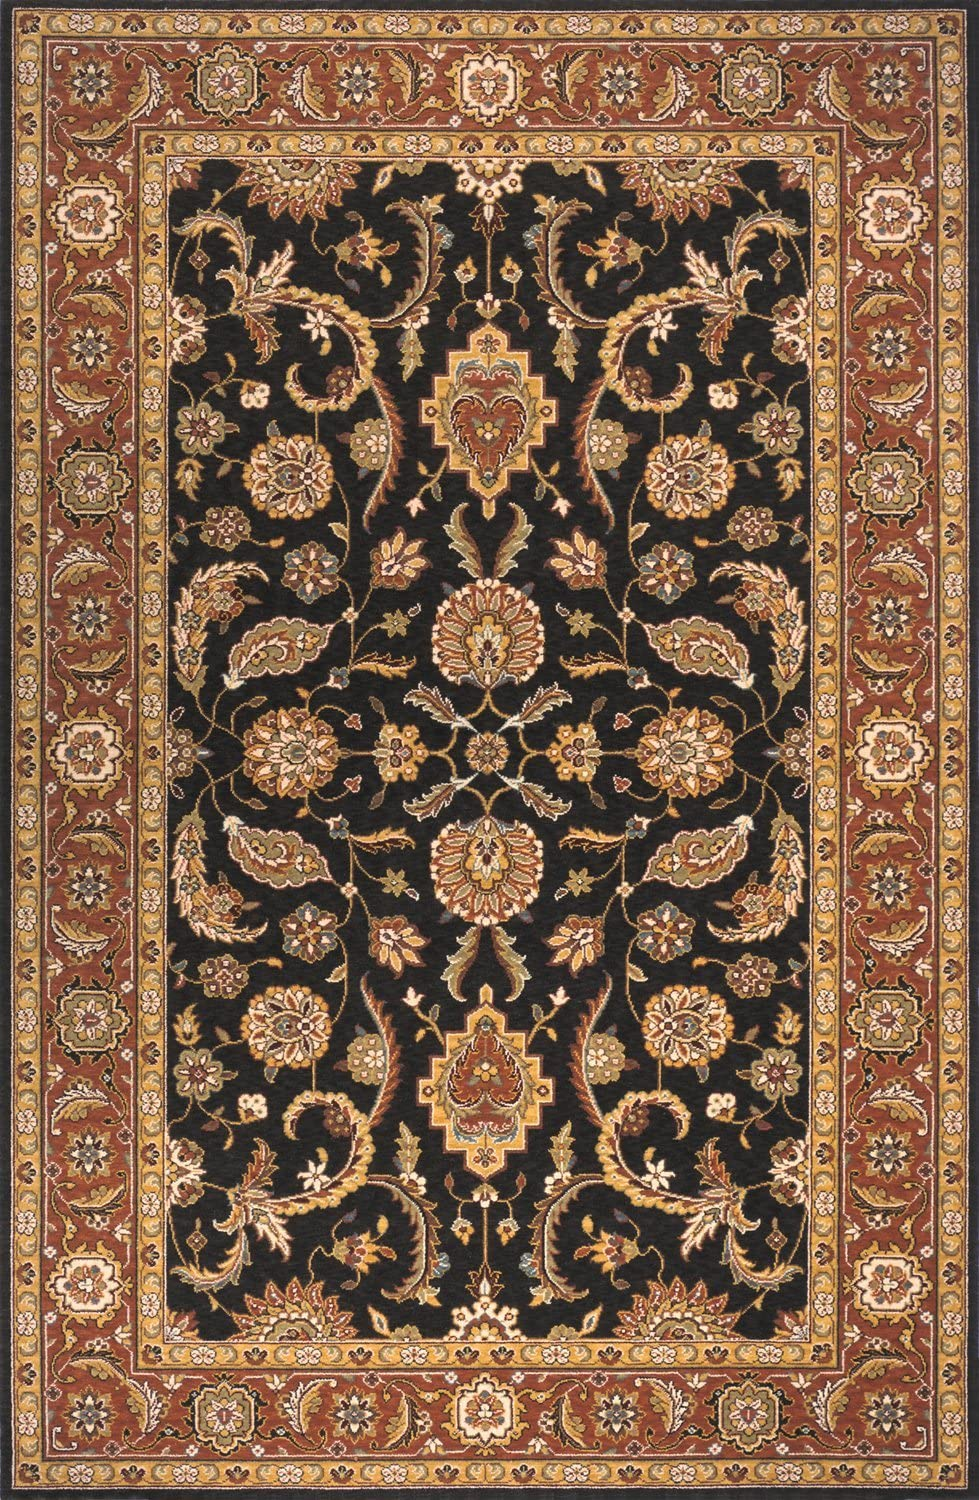 """Momeni Rugs Persian Garden Collection, 100% New Zealand Wool Traditional Area Rug, 2'6"""" x 8' Runner, Salmon Red"""